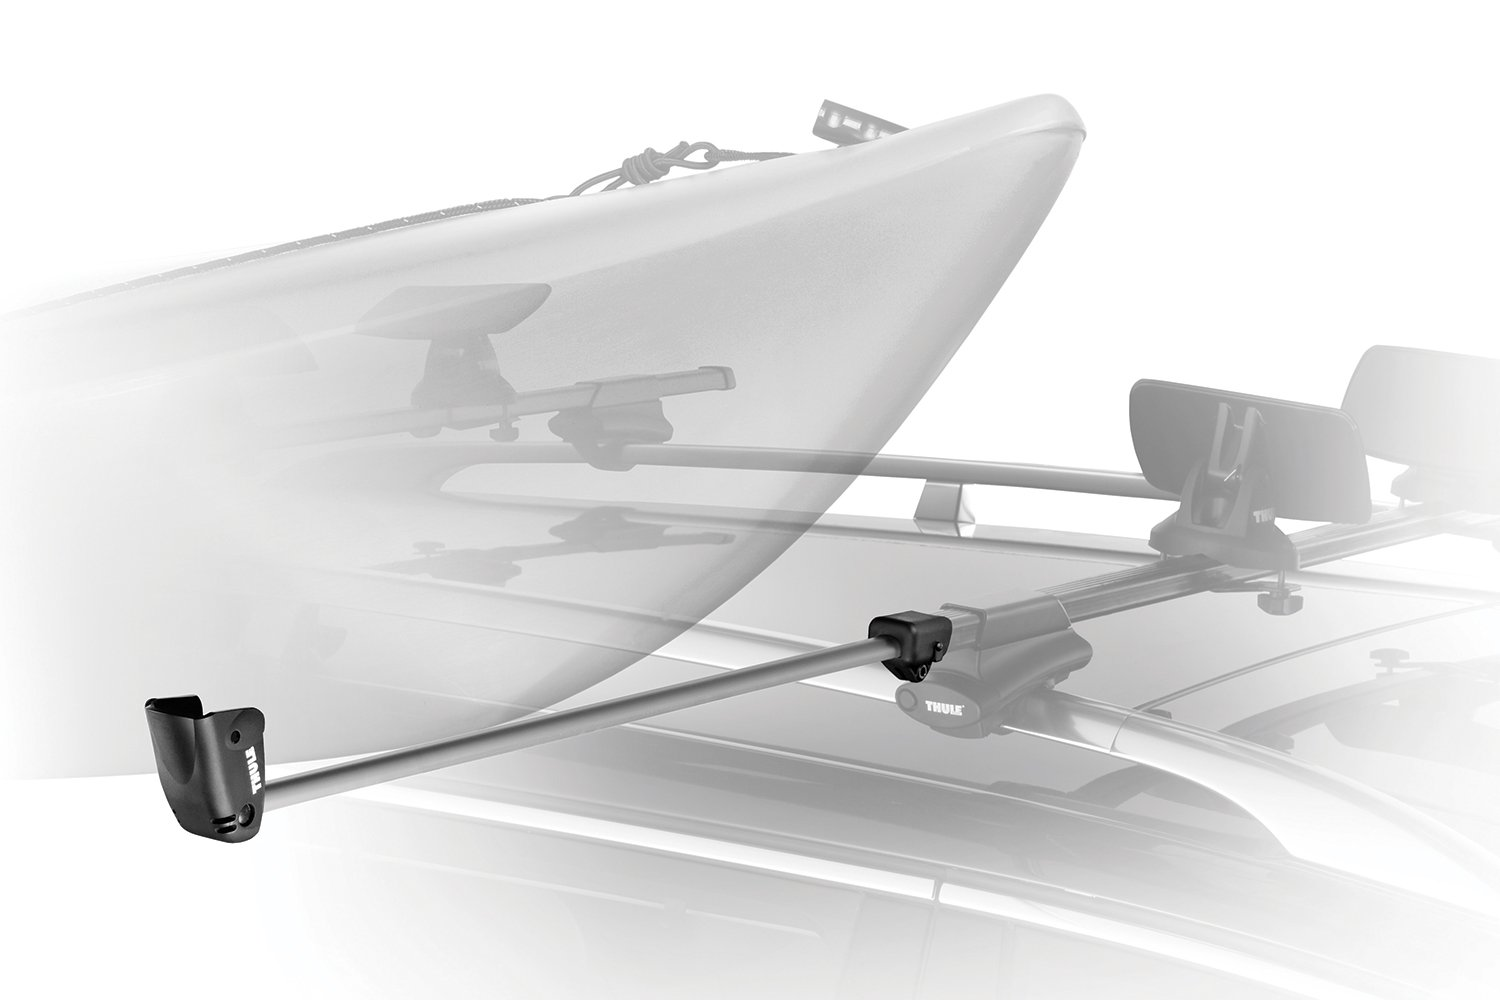 Thule Roof Rack Parts >> Thule Outrigger II Load Assist - Free Shipping on Thule Kayak Bars